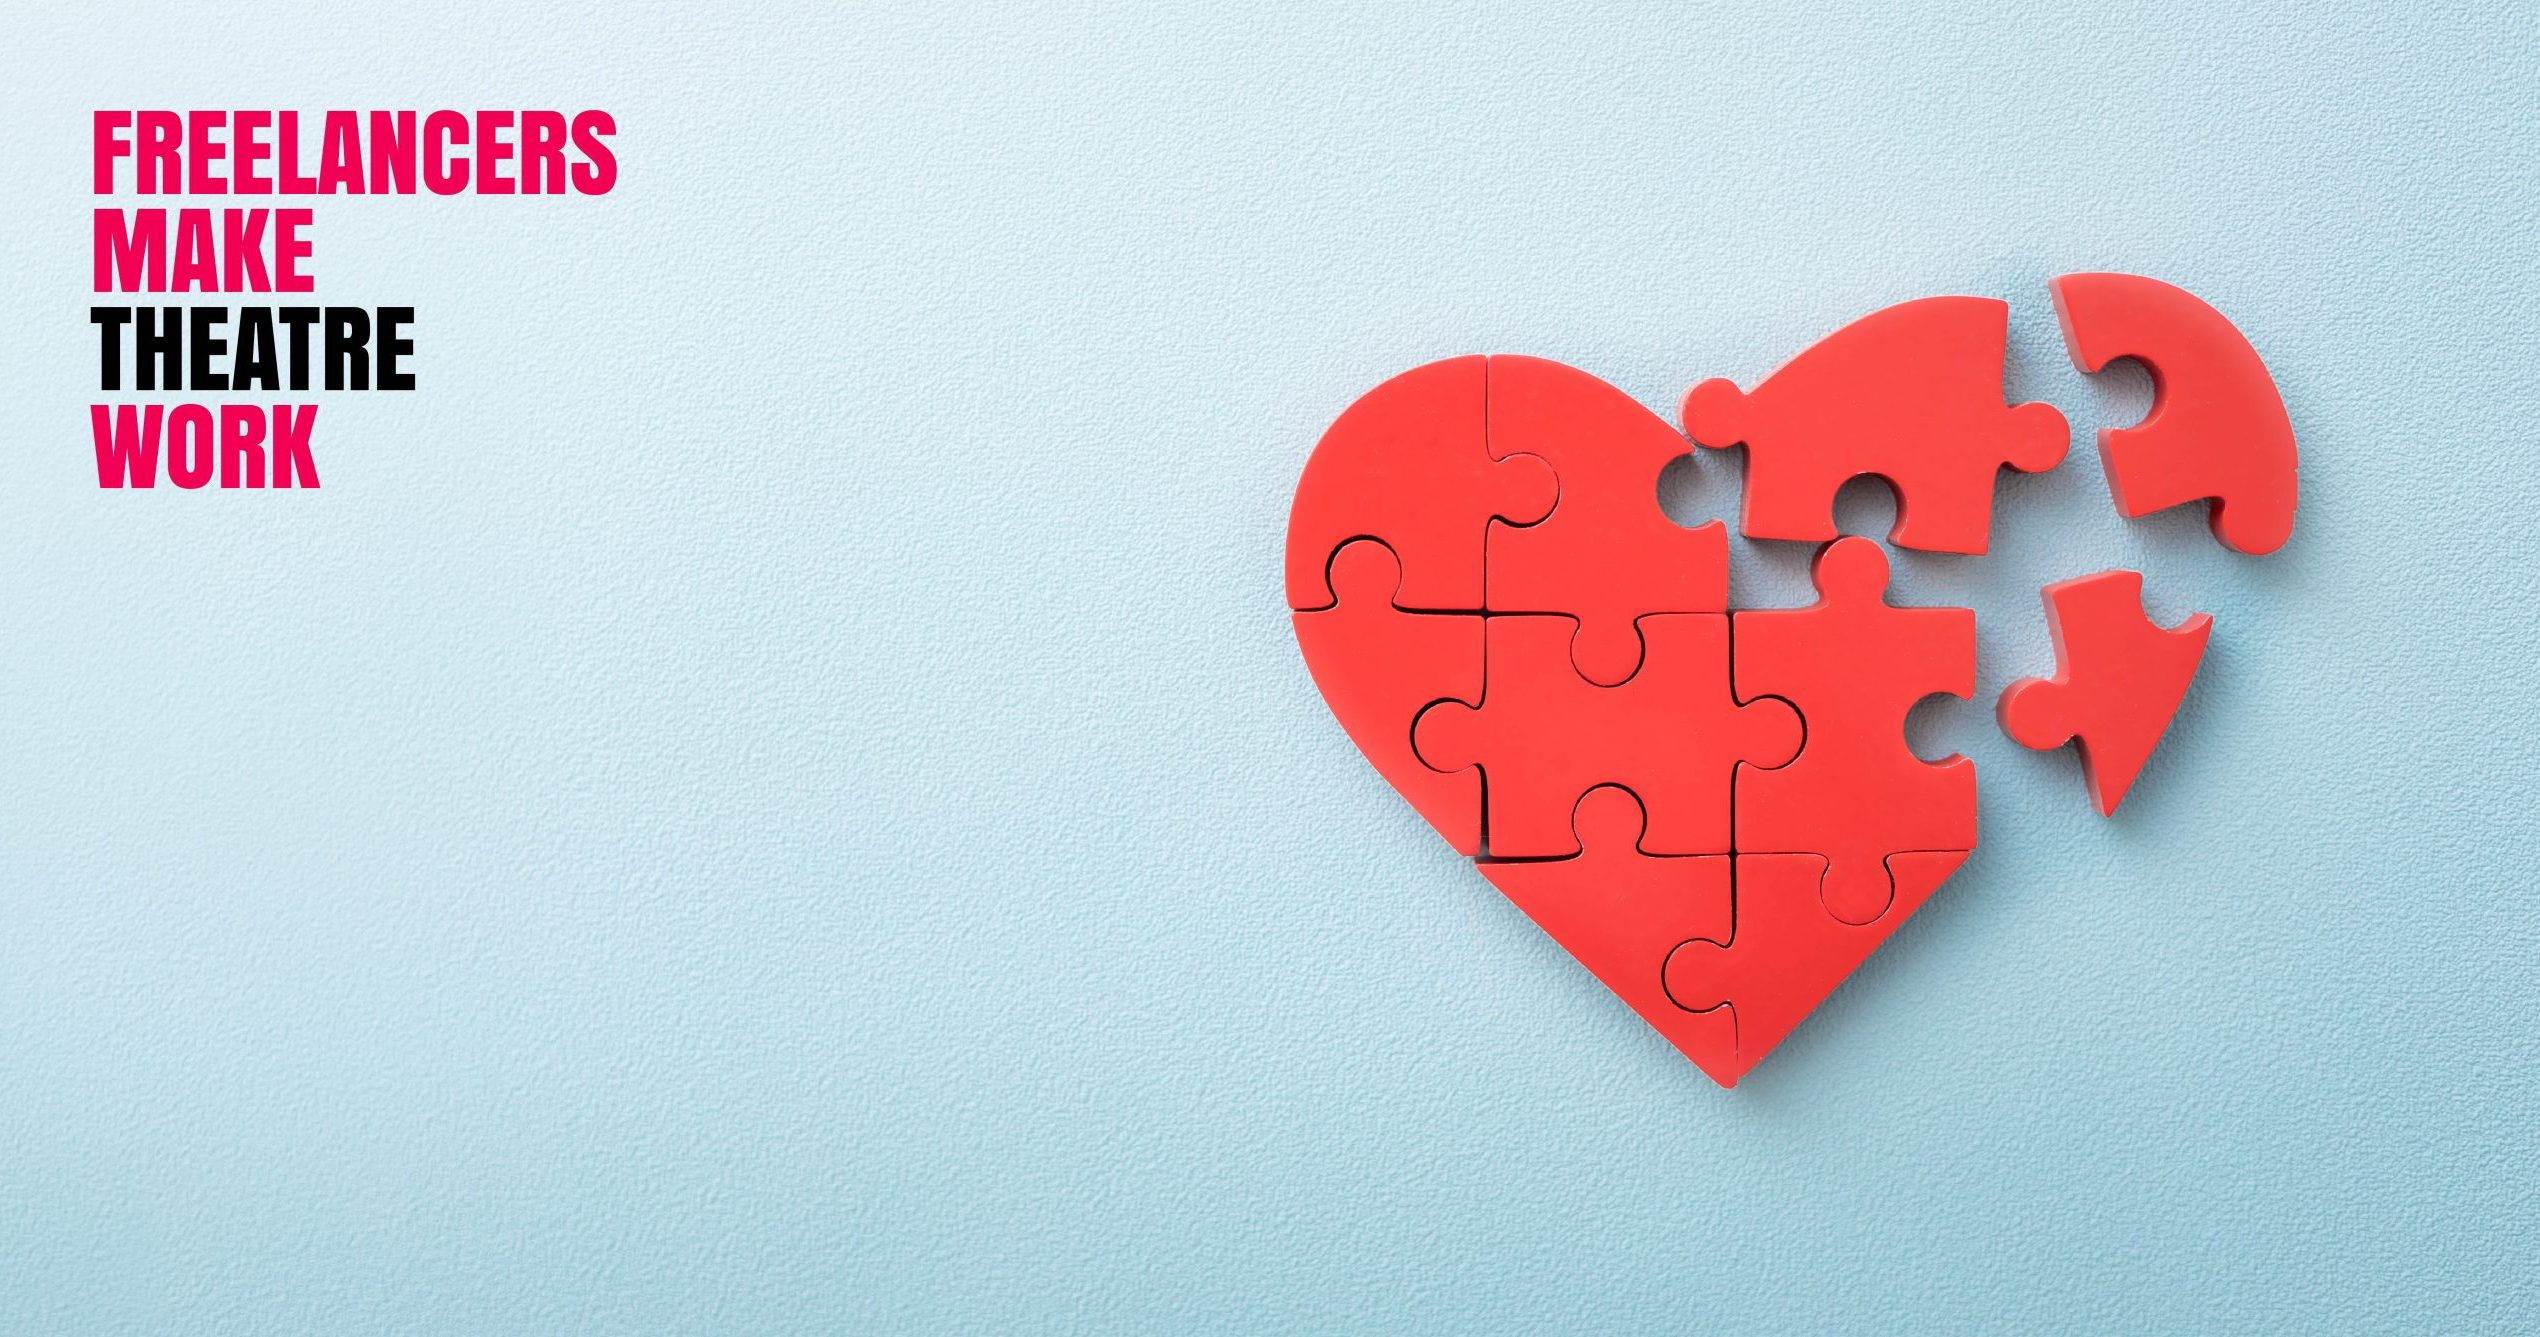 A red heart made of jigsaw pieces